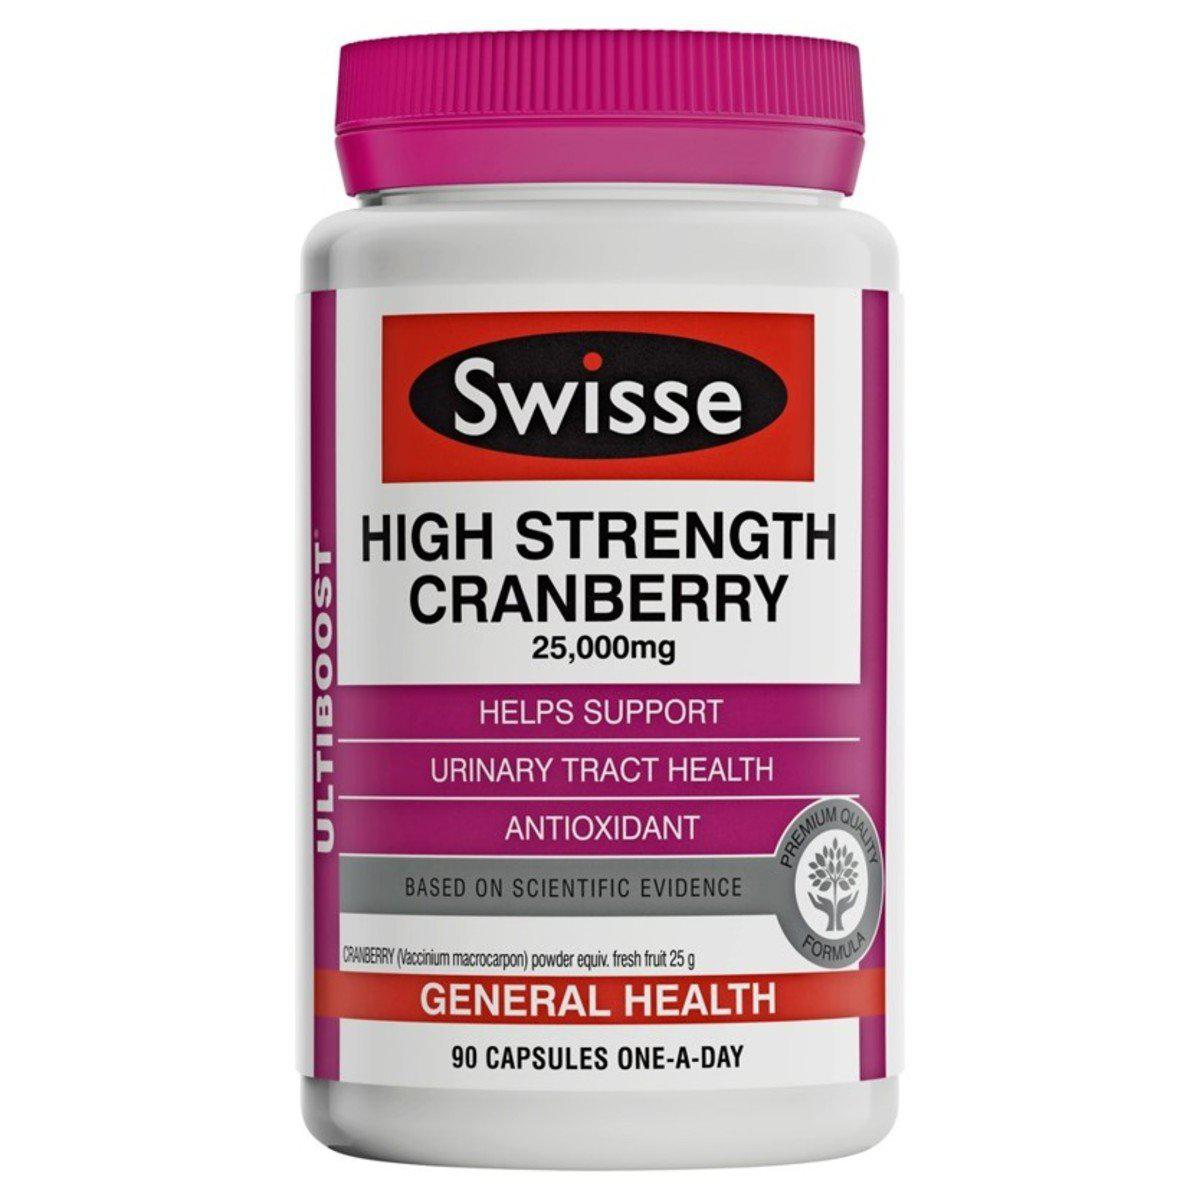 Swisse Ultiboost High Strength Cranberry 25000mg 90 Capsules Expiry Date 10/21